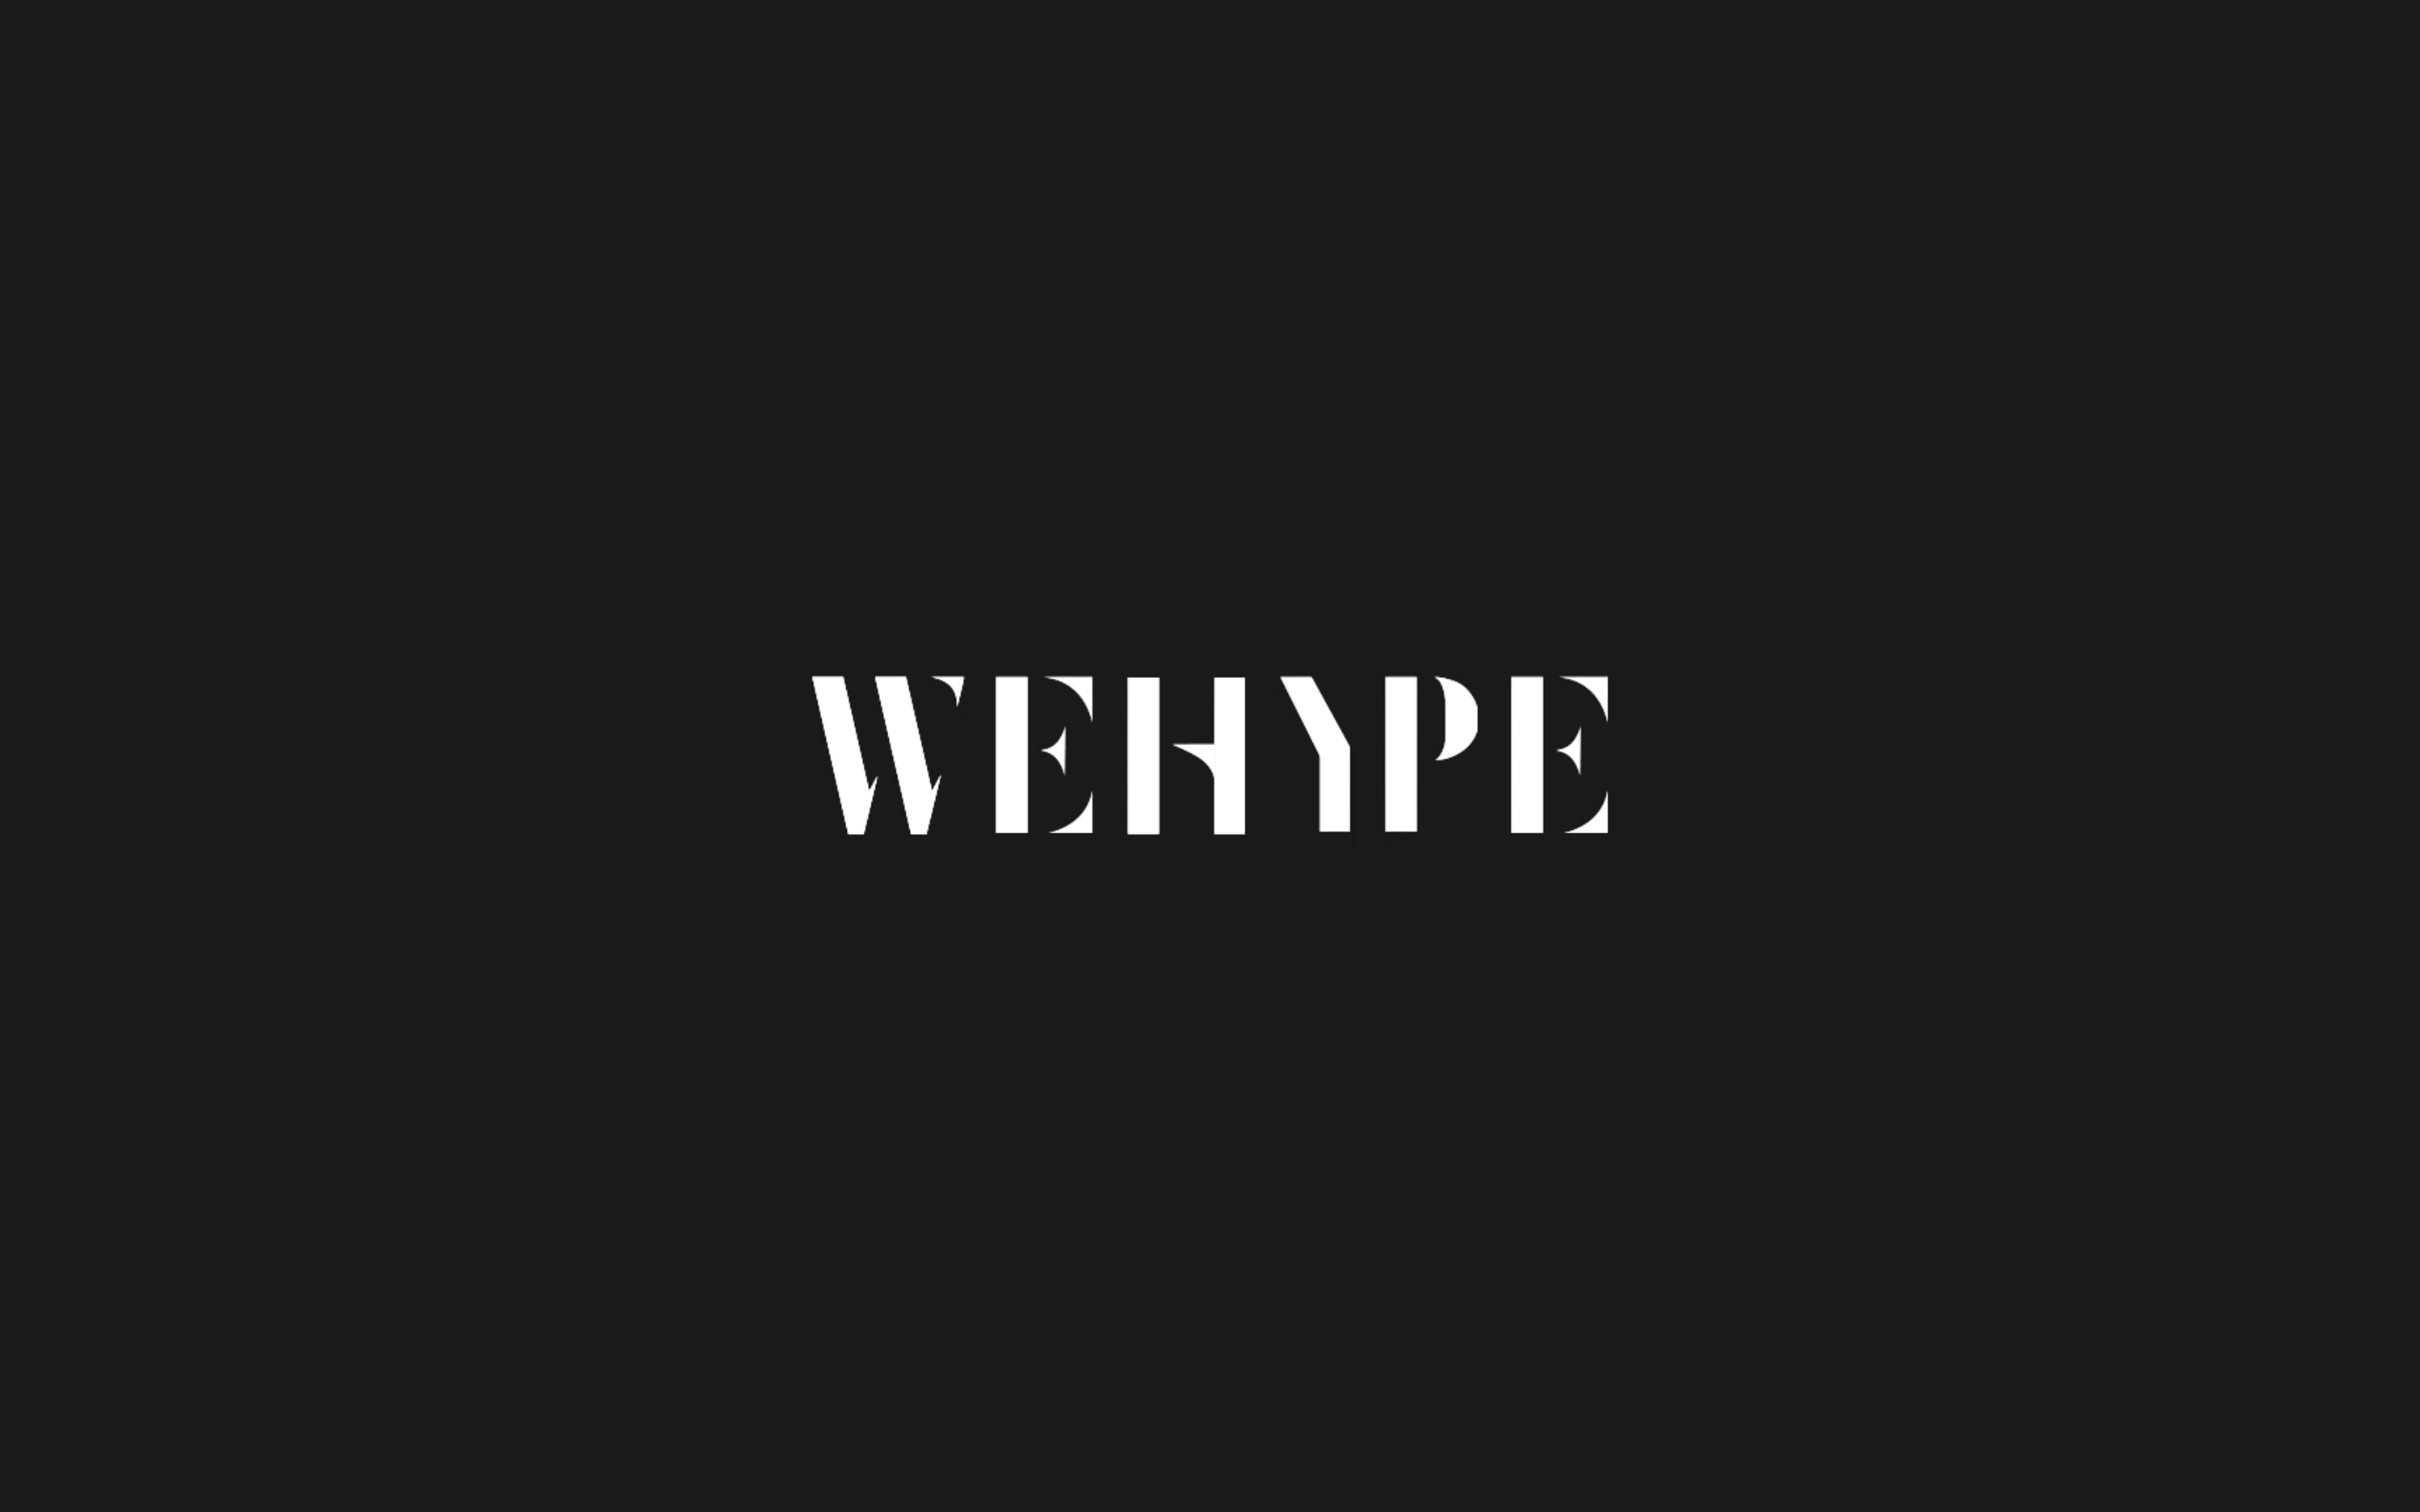 "Wehype Animated Explainer Video by Storisell. Wehype was founded in 2016 with the purpose of connecting brands and gamers. It's already been featured by Sting and SUP46 in Stockholm. Wehype is an influencer marketplace connecting brands to relevant gaming influencers. They help brands promote their products or services through live video content created by influencers the audience actually trust. Bridging the gap between the gaming community and the rest of the world. In this production, we focus on several gaming aspects. To many, it might seem surprising that more people watch gaming videos than HBO, Netflix, and ESPN, combined. That's one of the challenges we faced in the pre-production. How do we effectively communicate this fact to a marketing executive or CEO? And, what selling-points will get through to them? We decided to use storytelling examples, such as comparing traditional sporting fans at a football game with a number of people watching gamers play online. In order to really get our point across, we also incorporated a question into the manuscript: ""So, we asked ourselves: How can you, as a marketeer, create highly engaging marketing campaigns on their terms?"". This question makes the aim of the video more clear and its goal is to directly provoke the target audience ie. marketing executive or CEO. In the end, our team at Storisell has produced a video campaign that will run through ad campaigns and on social media with tailored graphics based on the customer's visual identity. https://storisell.com/portfolio/wehype/"